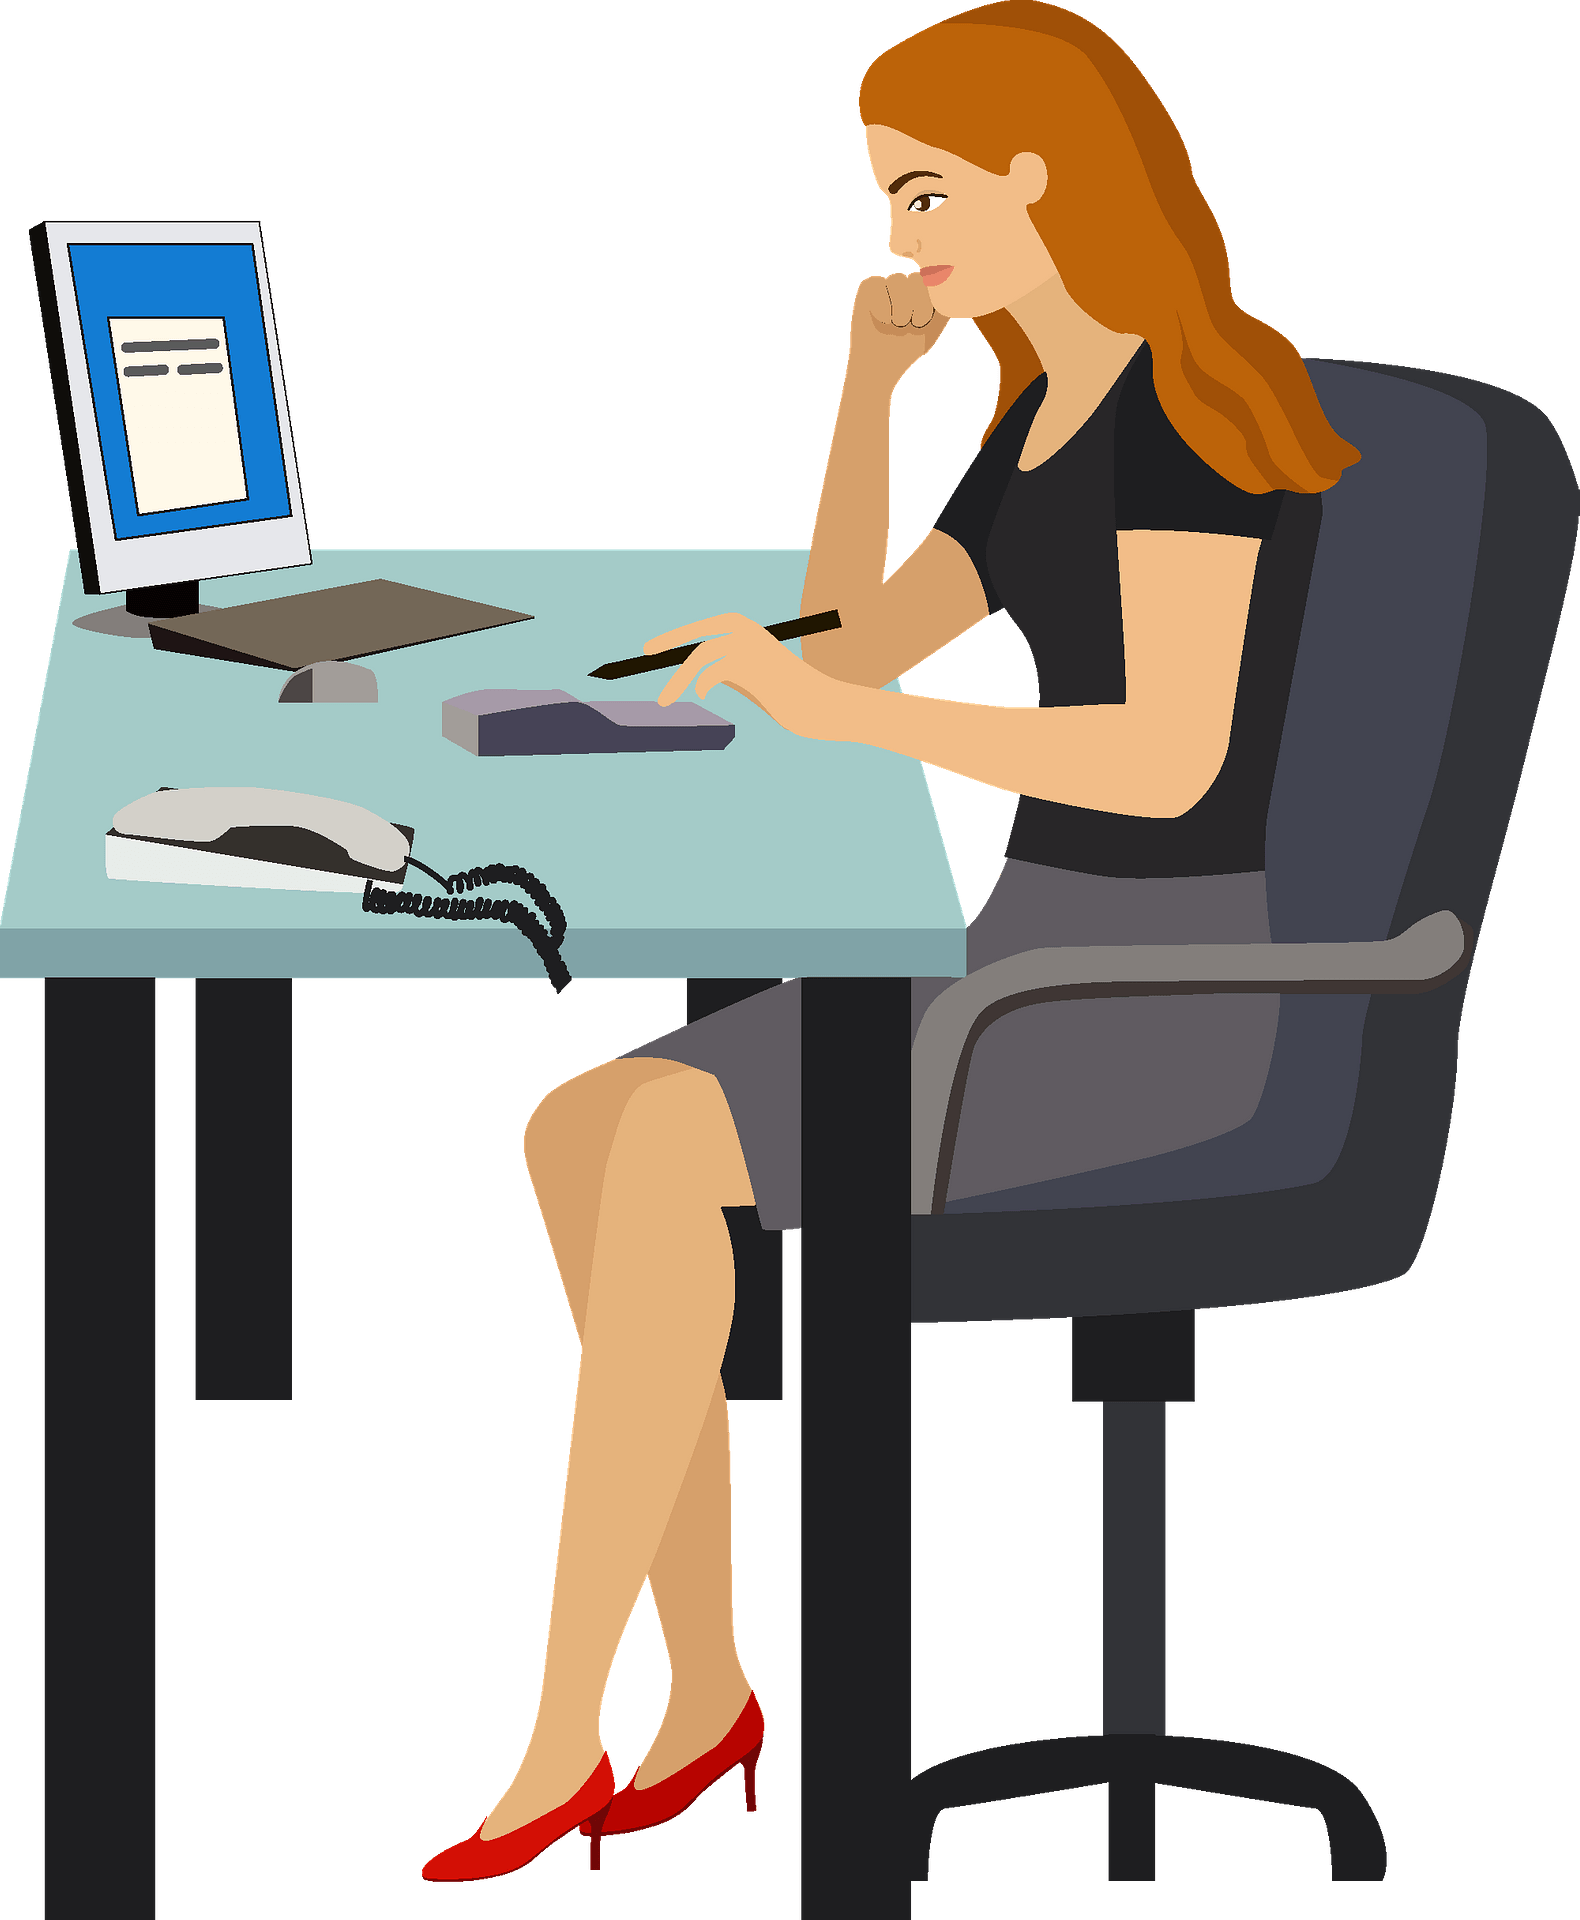 Accounting clipart woman, Accounting woman Transparent FREE for download on  WebStockReview 2020